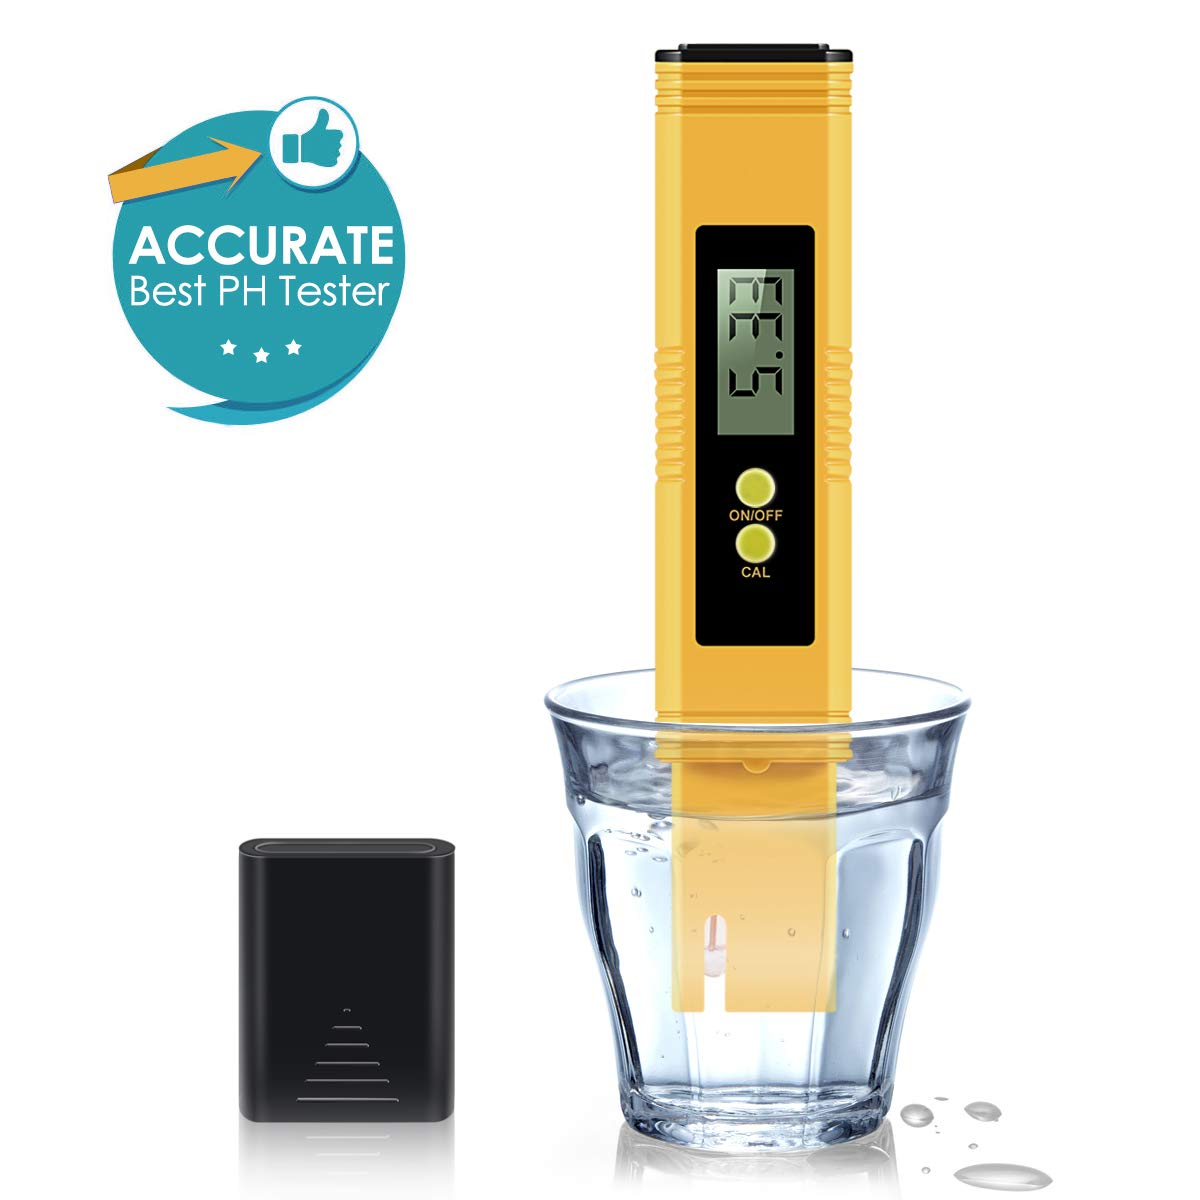 Digital PH Meter, PH Meter 0.01 PH High Accuracy Water Quality Tester with 0-13 PH Measurement Range for Household Drinking, Pool and Aquarium Water PH Tester Design